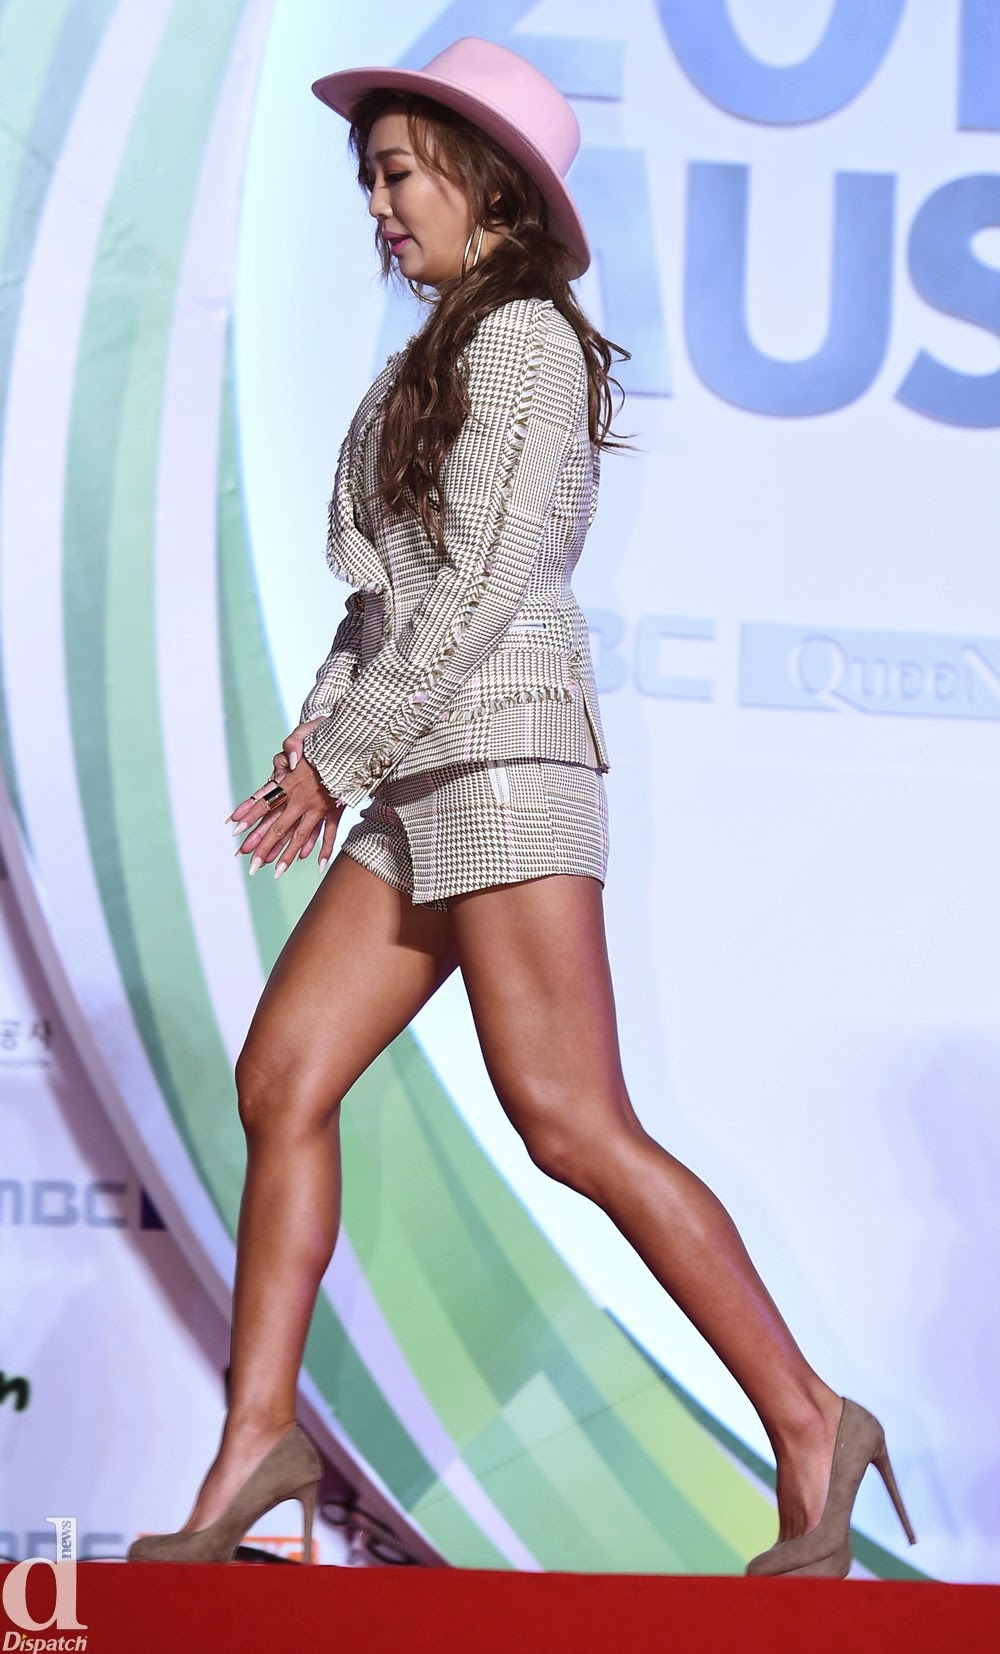 Hyorin 2014 Melon Music Awards